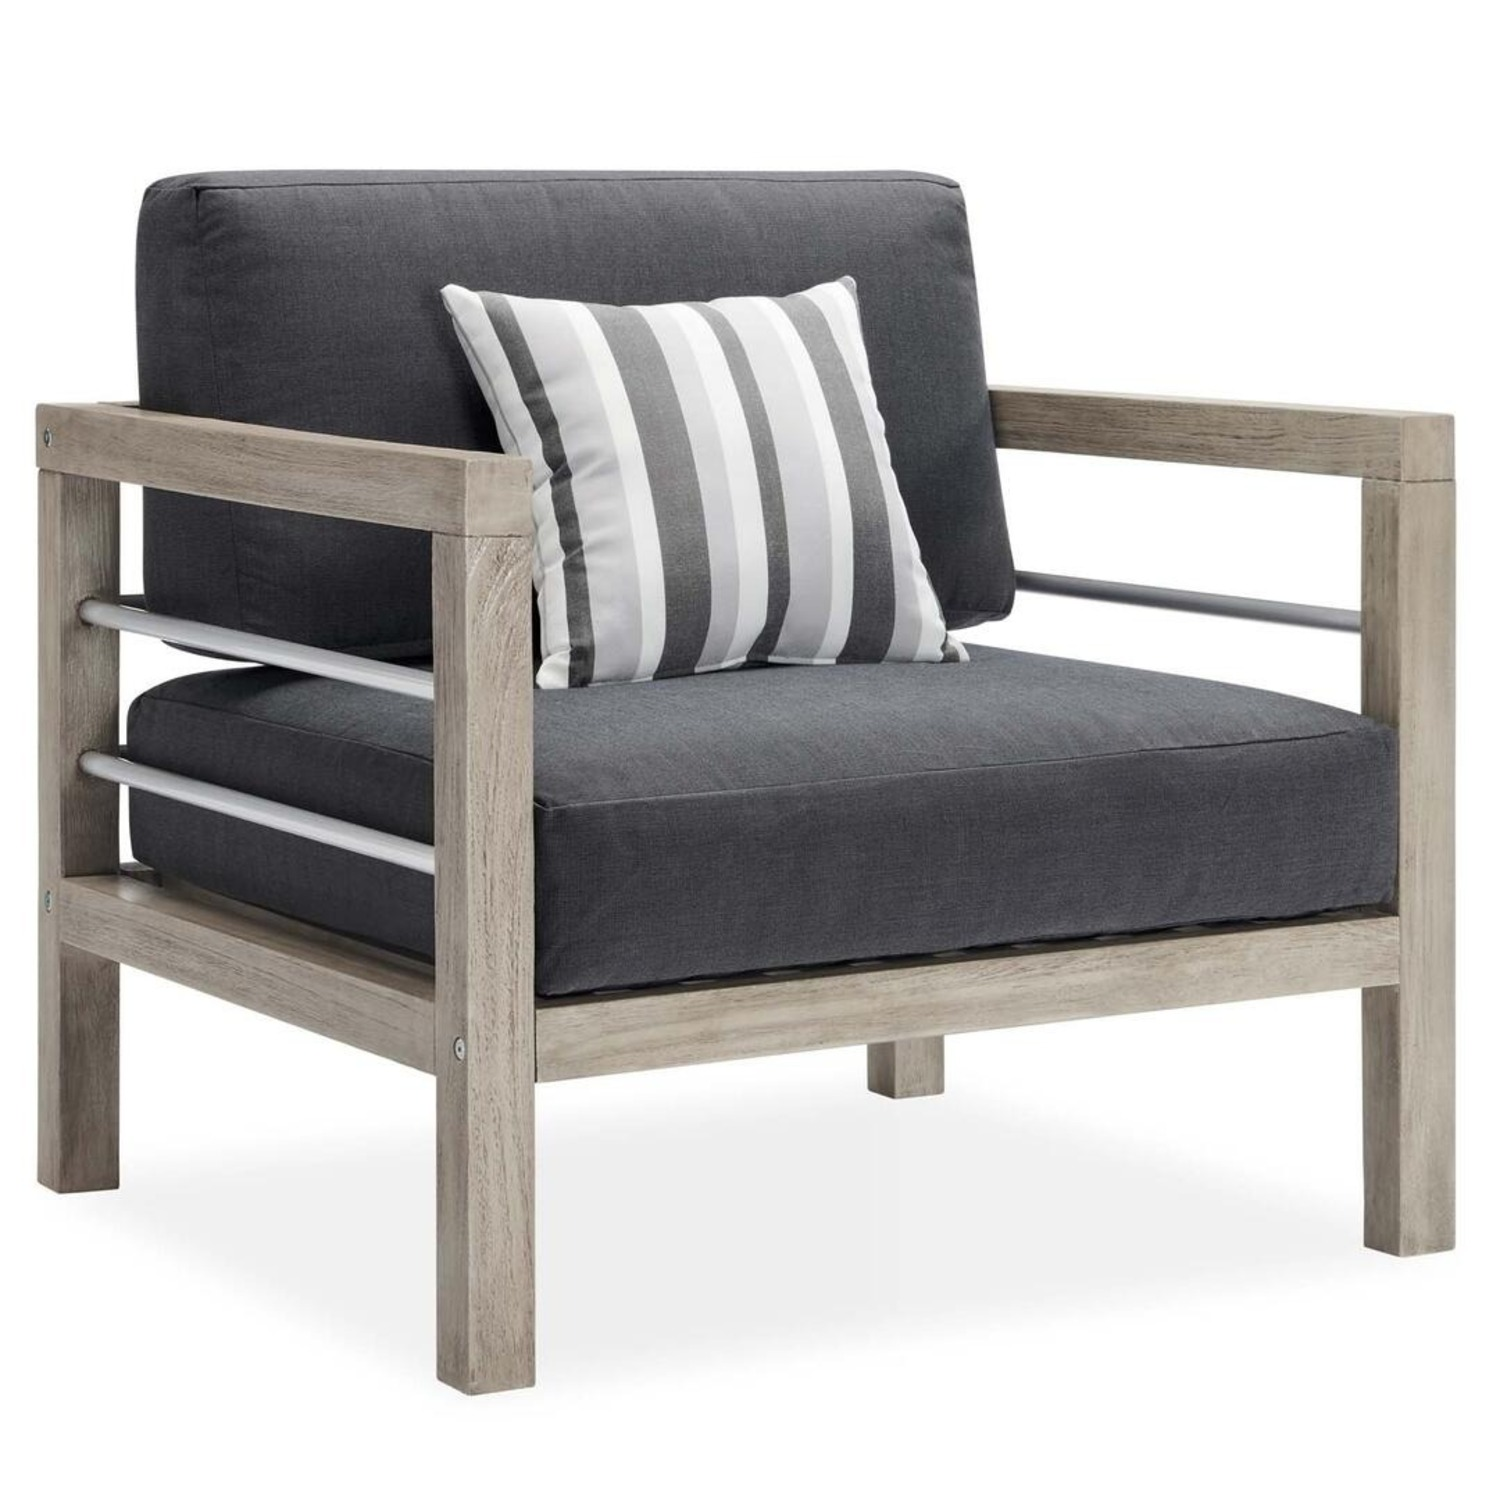 3-Piece Outdoor Patio Set In Light Gray Finish - image-4